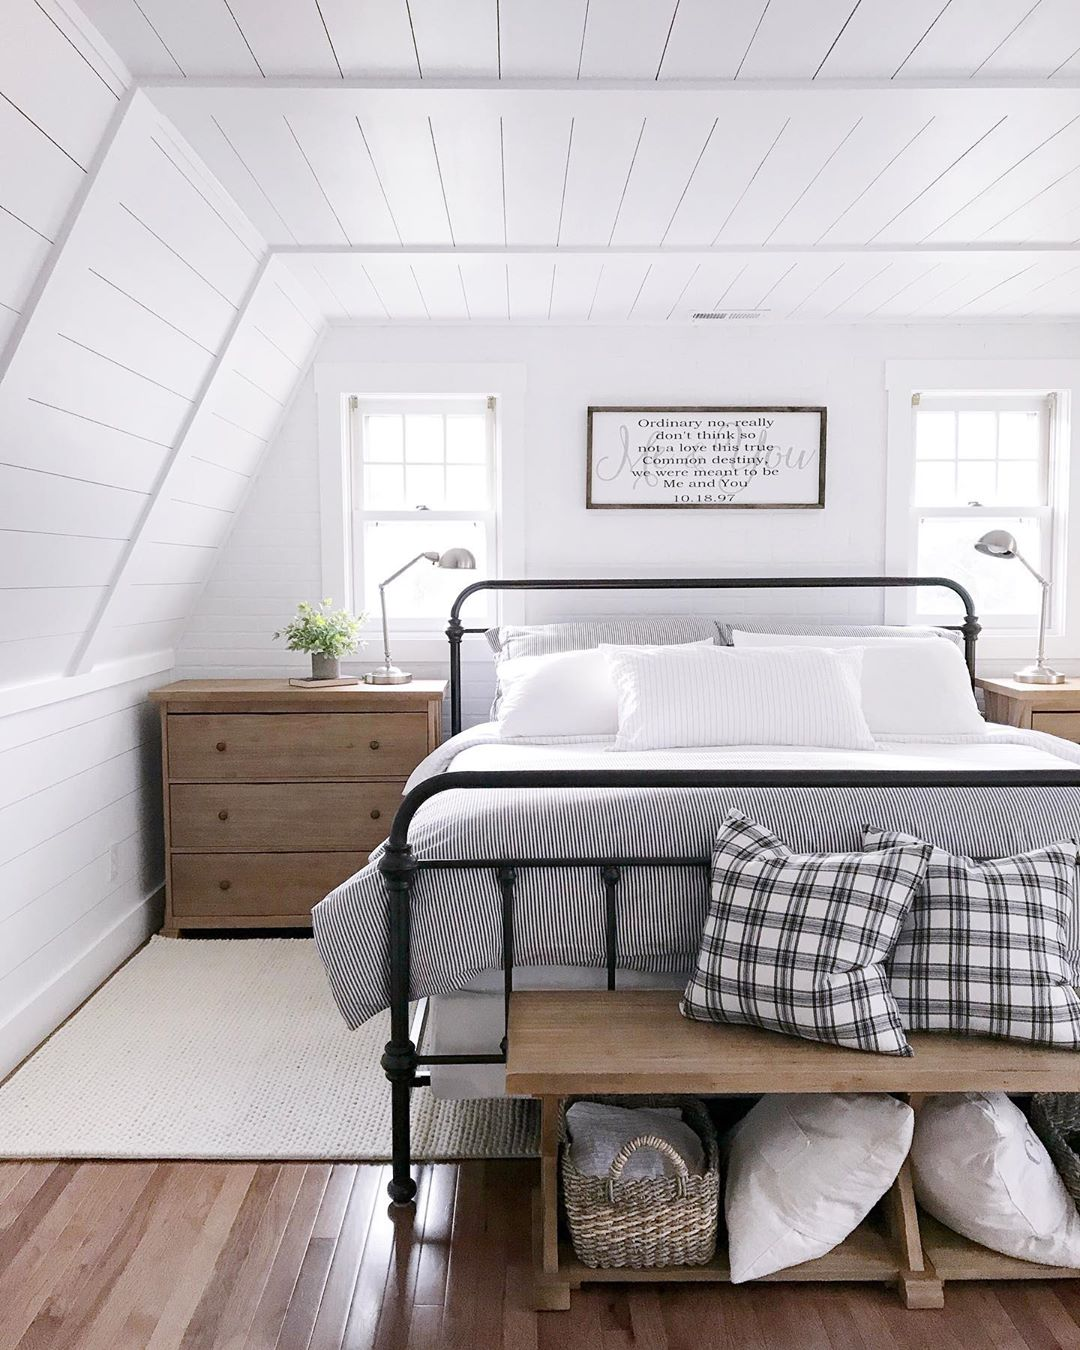 Farmhouse Style Bedroom with Wrought Iron Headboard via @angelarose_diyhome